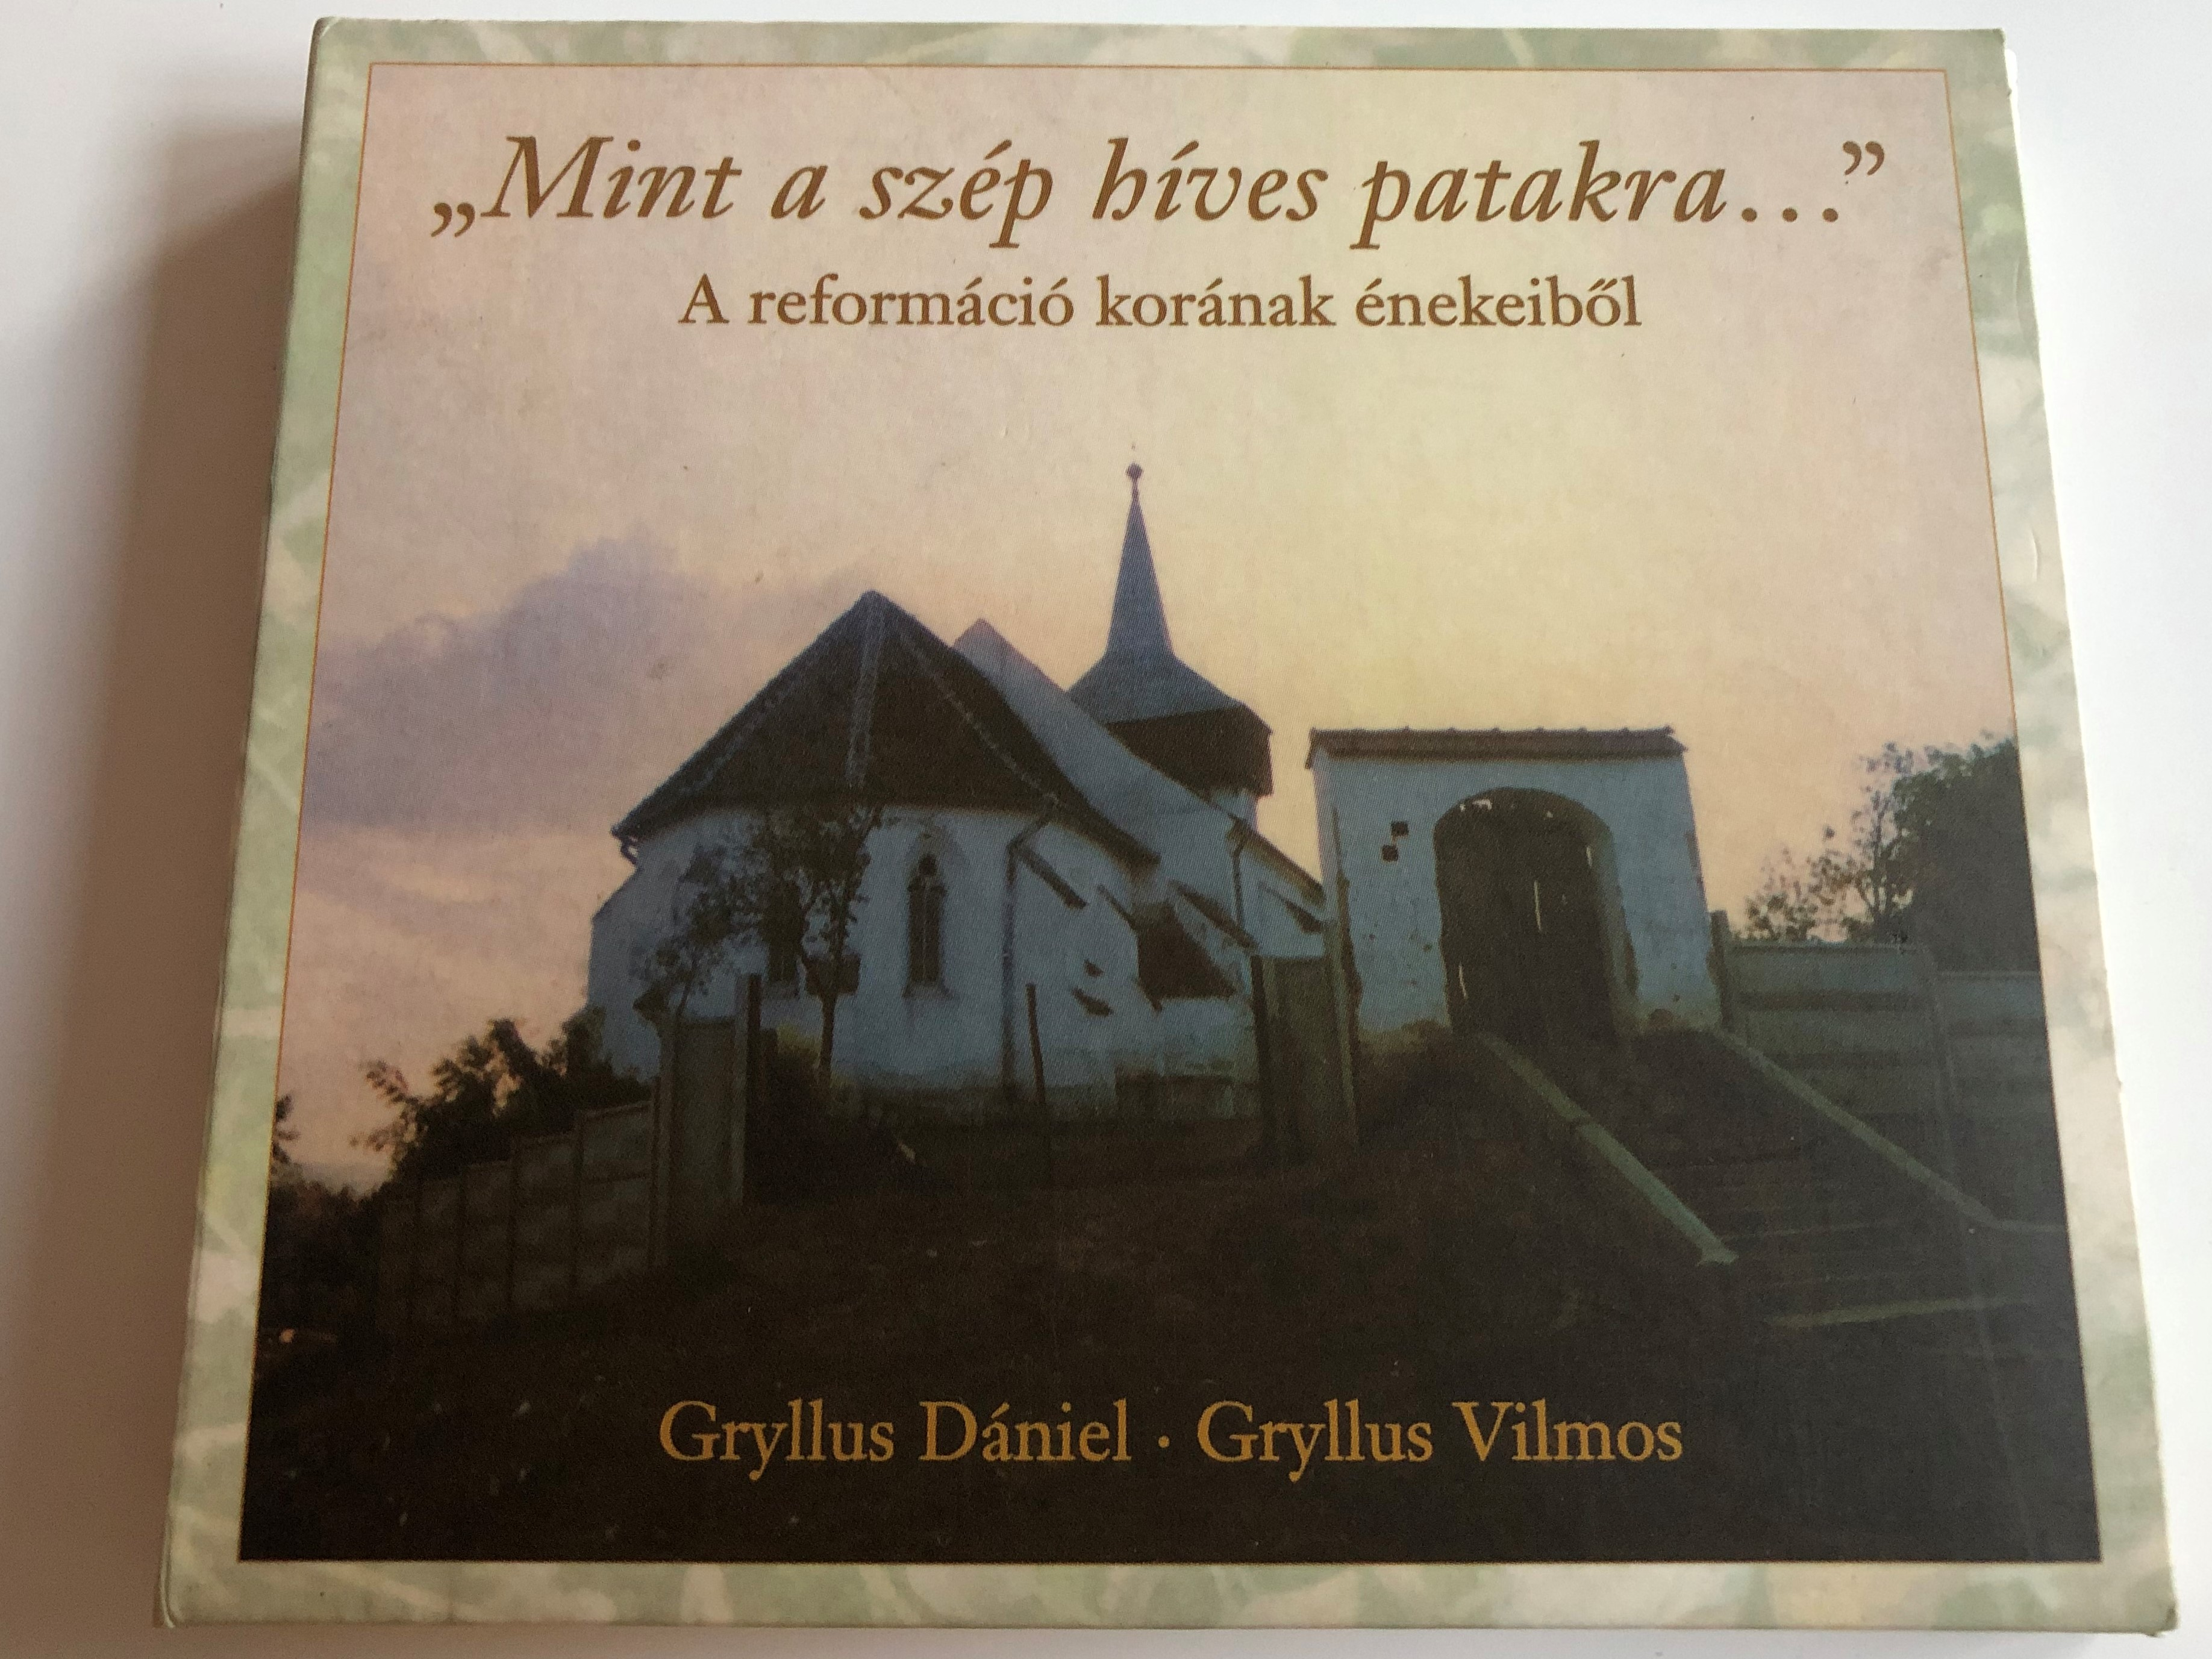 gryllus-d-niel-gryllus-vilmos-mint-a-sz-p-h-ves-patakra...-a-reform-ci-kor-nak-nekeib-l-audio-cd-2001-christian-songs-in-hungarian-from-the-age-of-the-reformation-1-.jpg